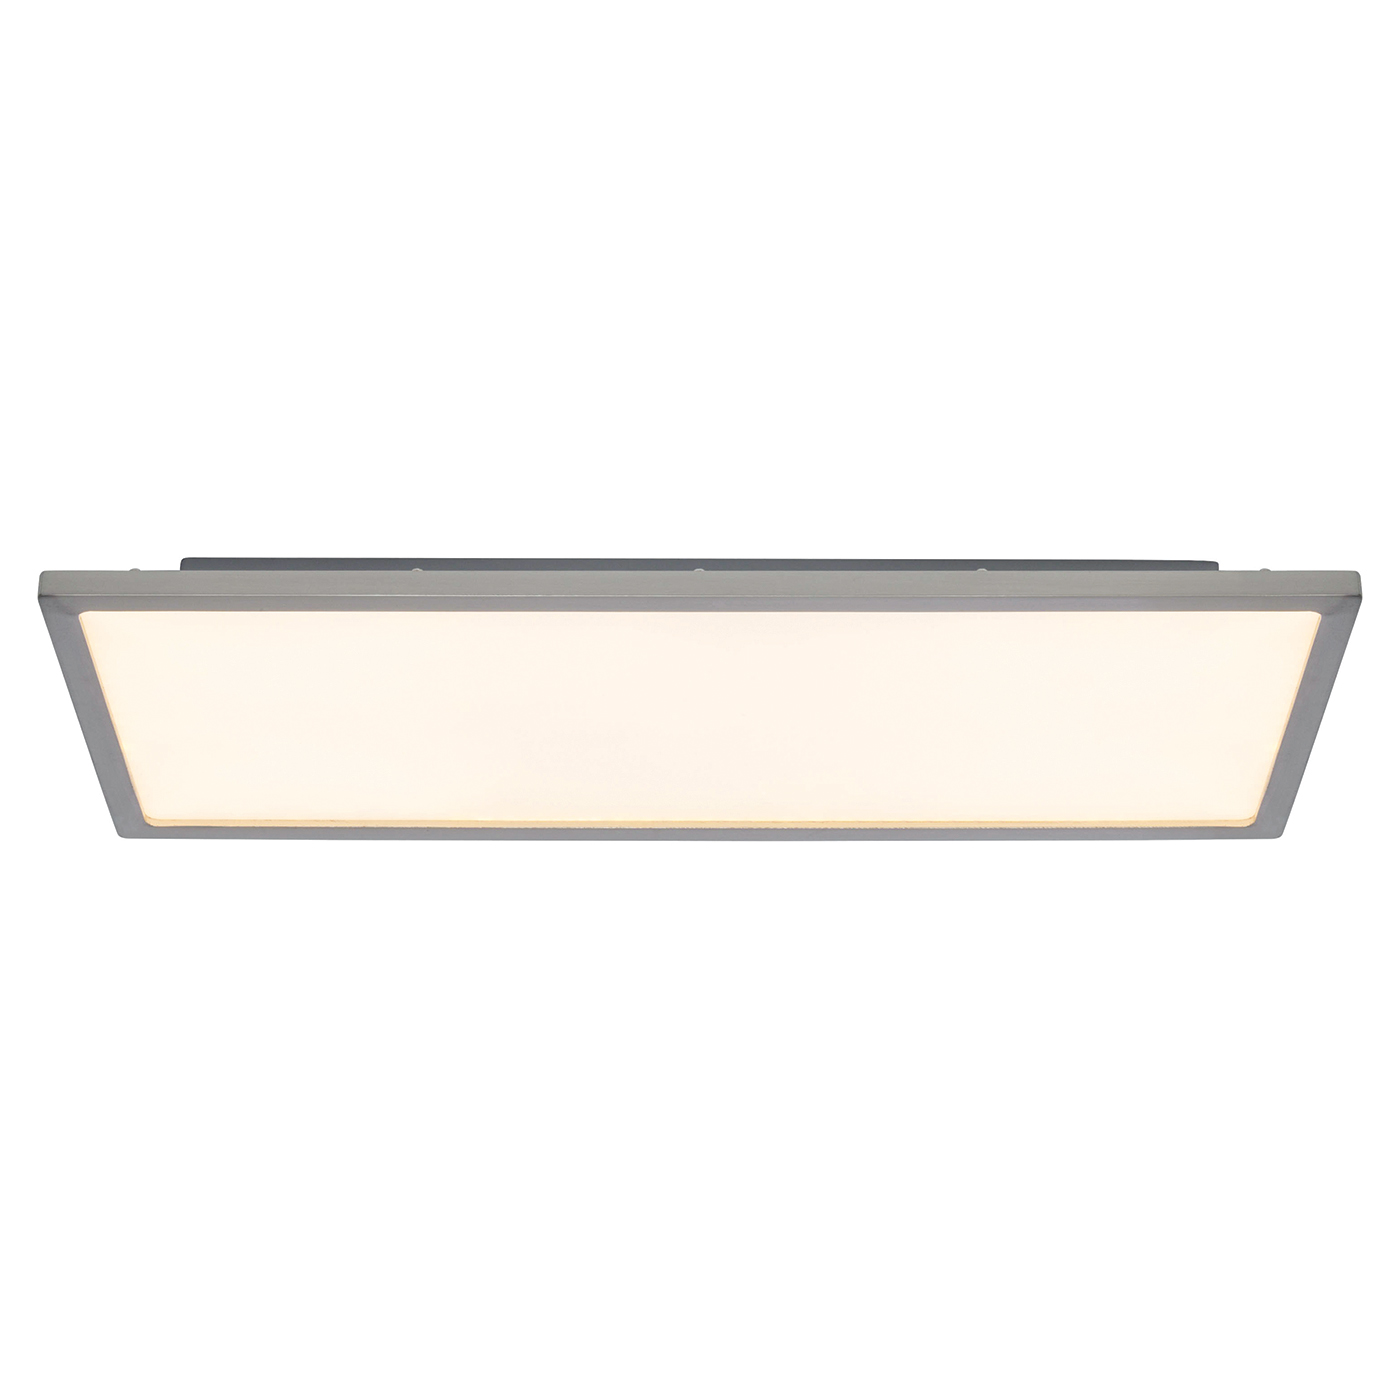 Endon G9446413 Ceres Ceiling Light 20W